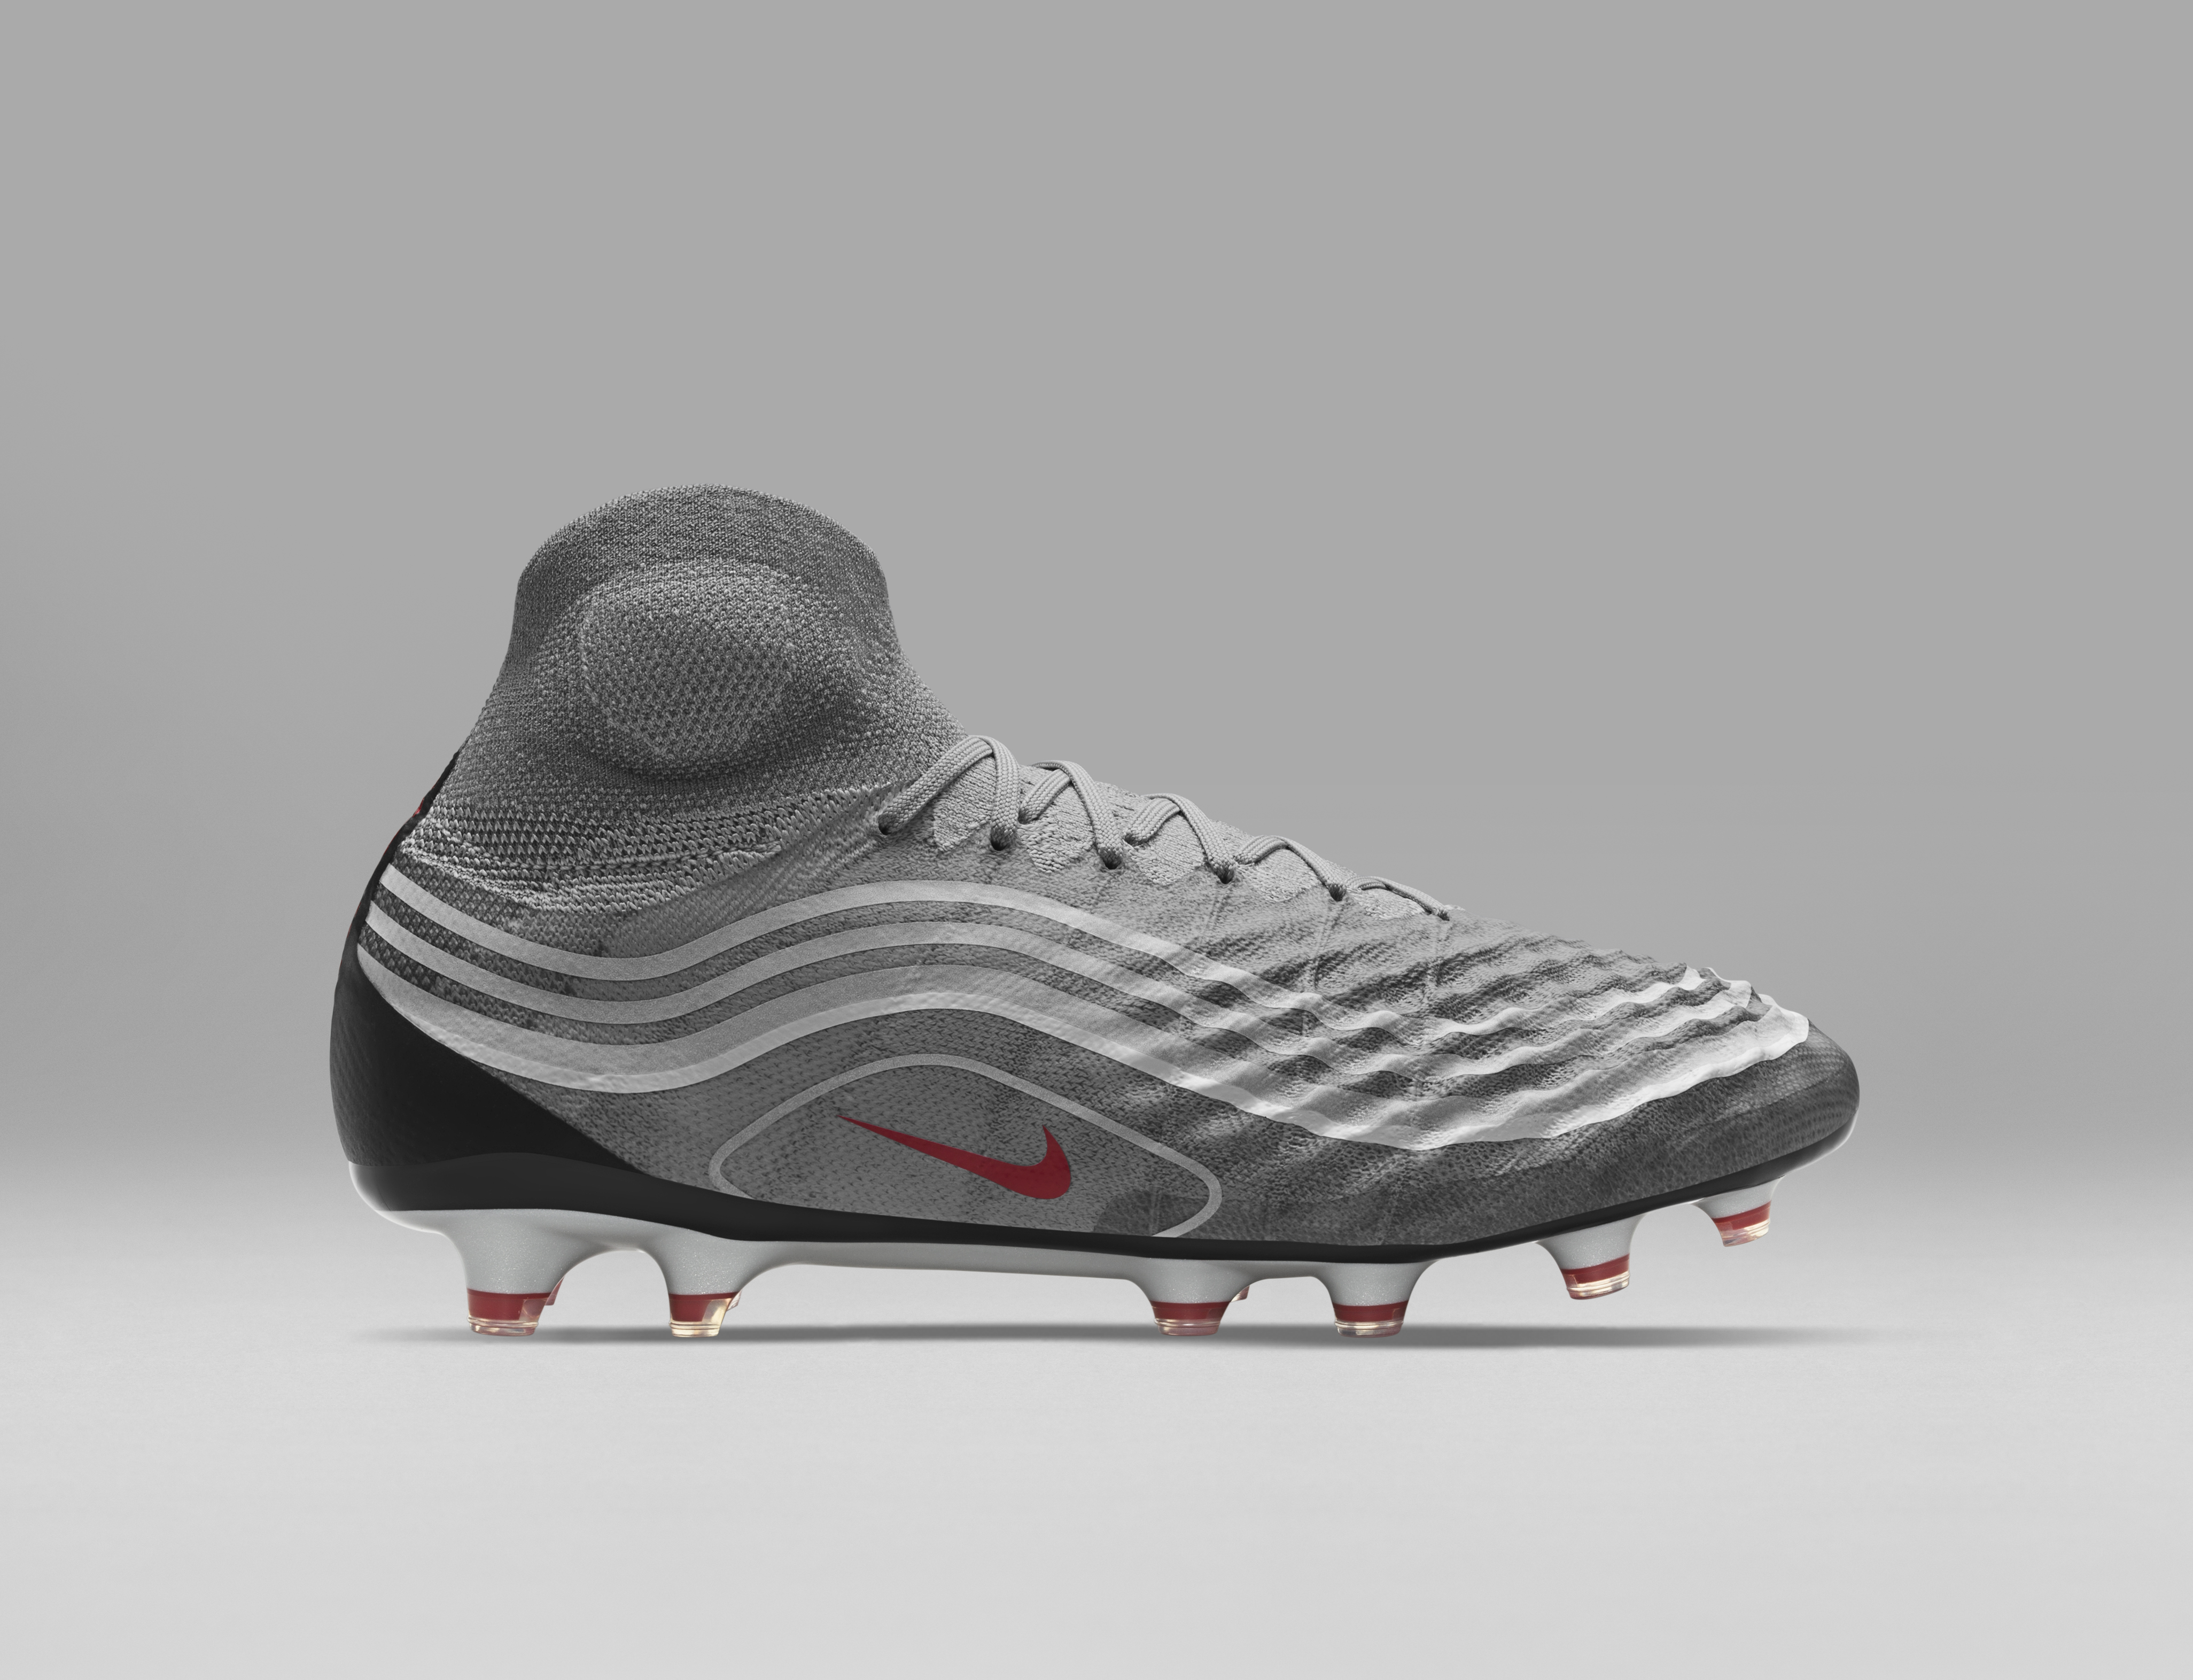 nike football unveils boots inspired by air max icons. Black Bedroom Furniture Sets. Home Design Ideas